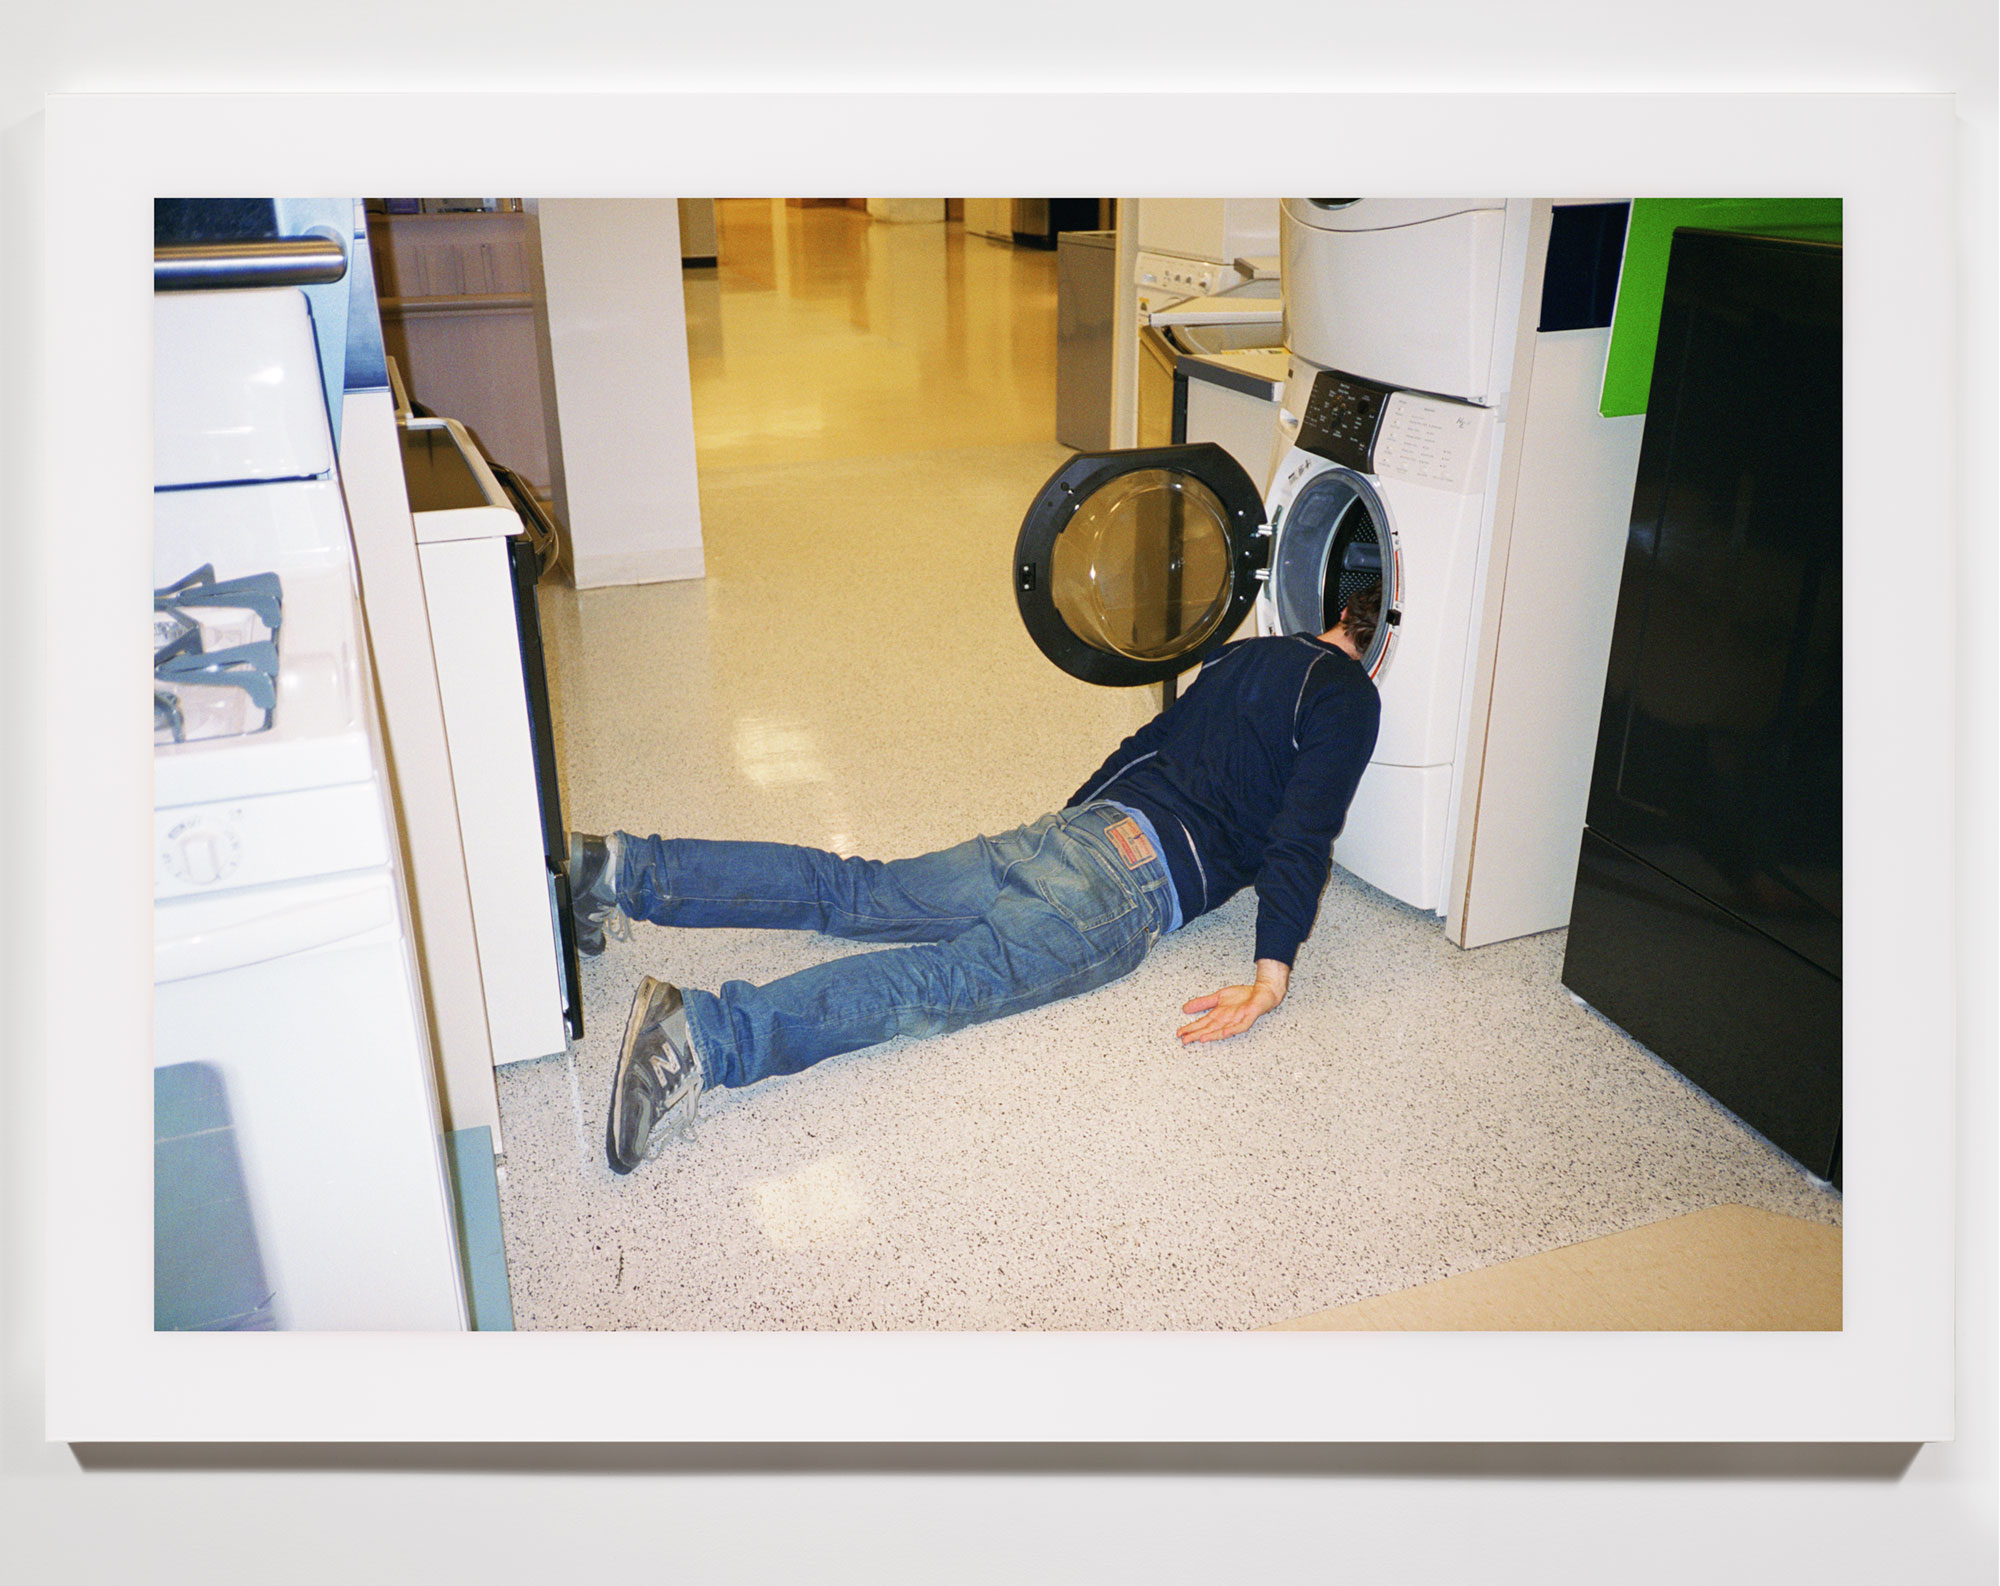 The Phenomenology of Shopping (Sears, Westfield Mall, Bridgeport, CT)    2002   Chromogenic print  68 x 47 3/4 inches